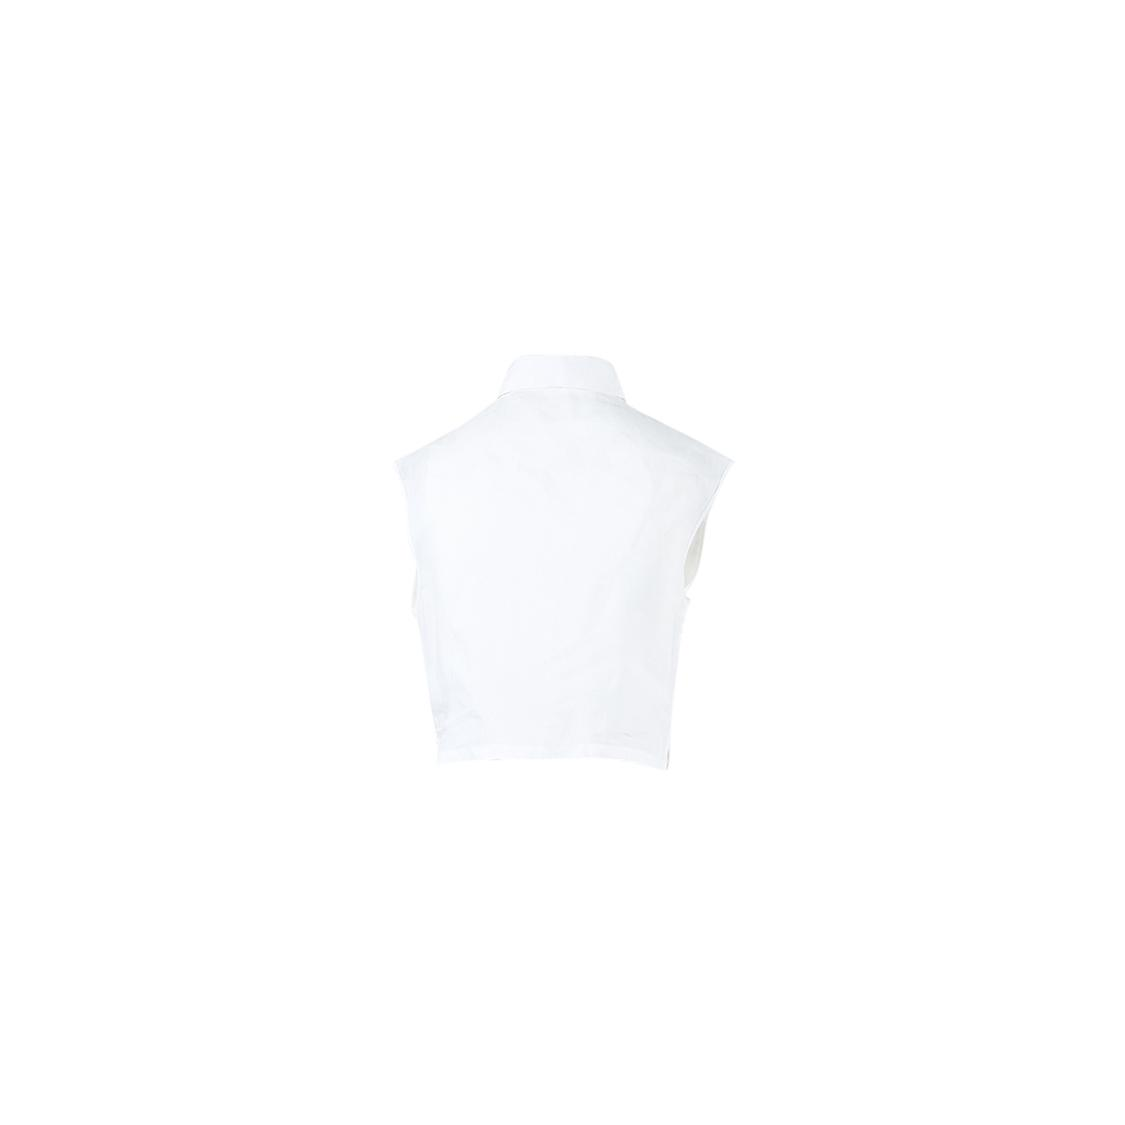 1dd8ec7c7f7 Lyst - Chanel White Sleeveless Buttoned & Pleated Cropped Top in White